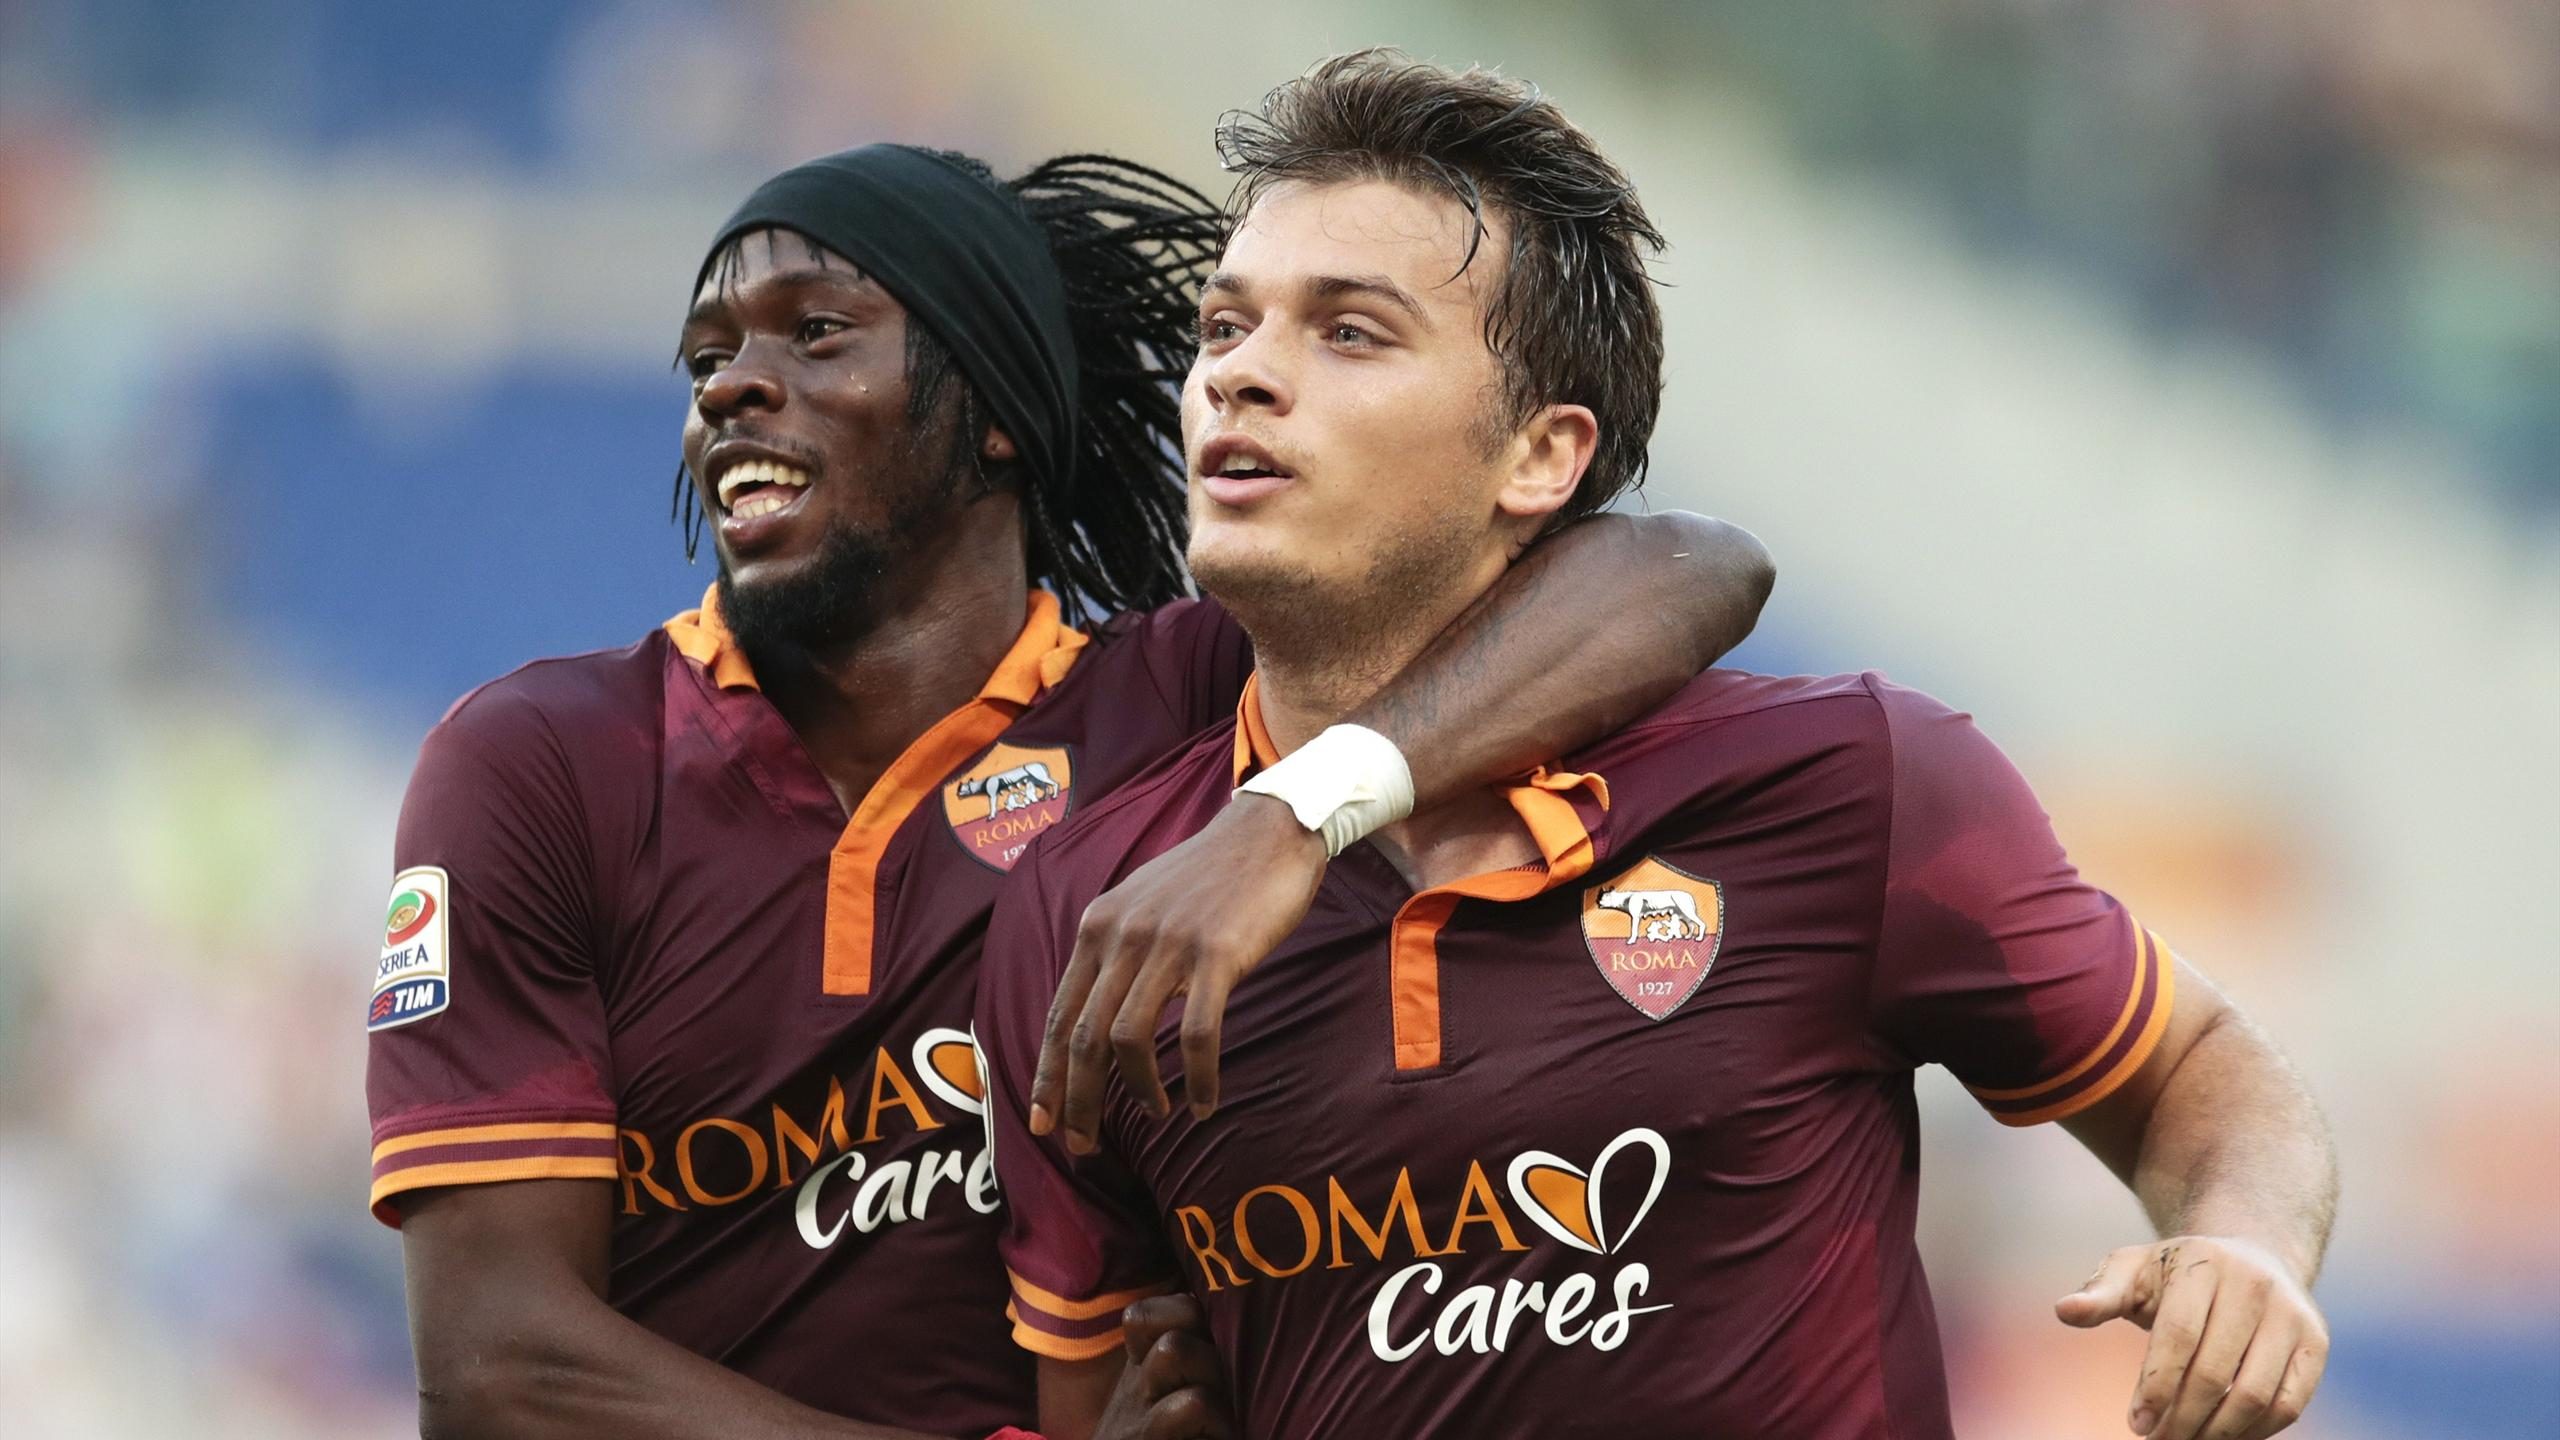 AS Roma's Adem Ljajic (R) celebrates with teammate Gervinho